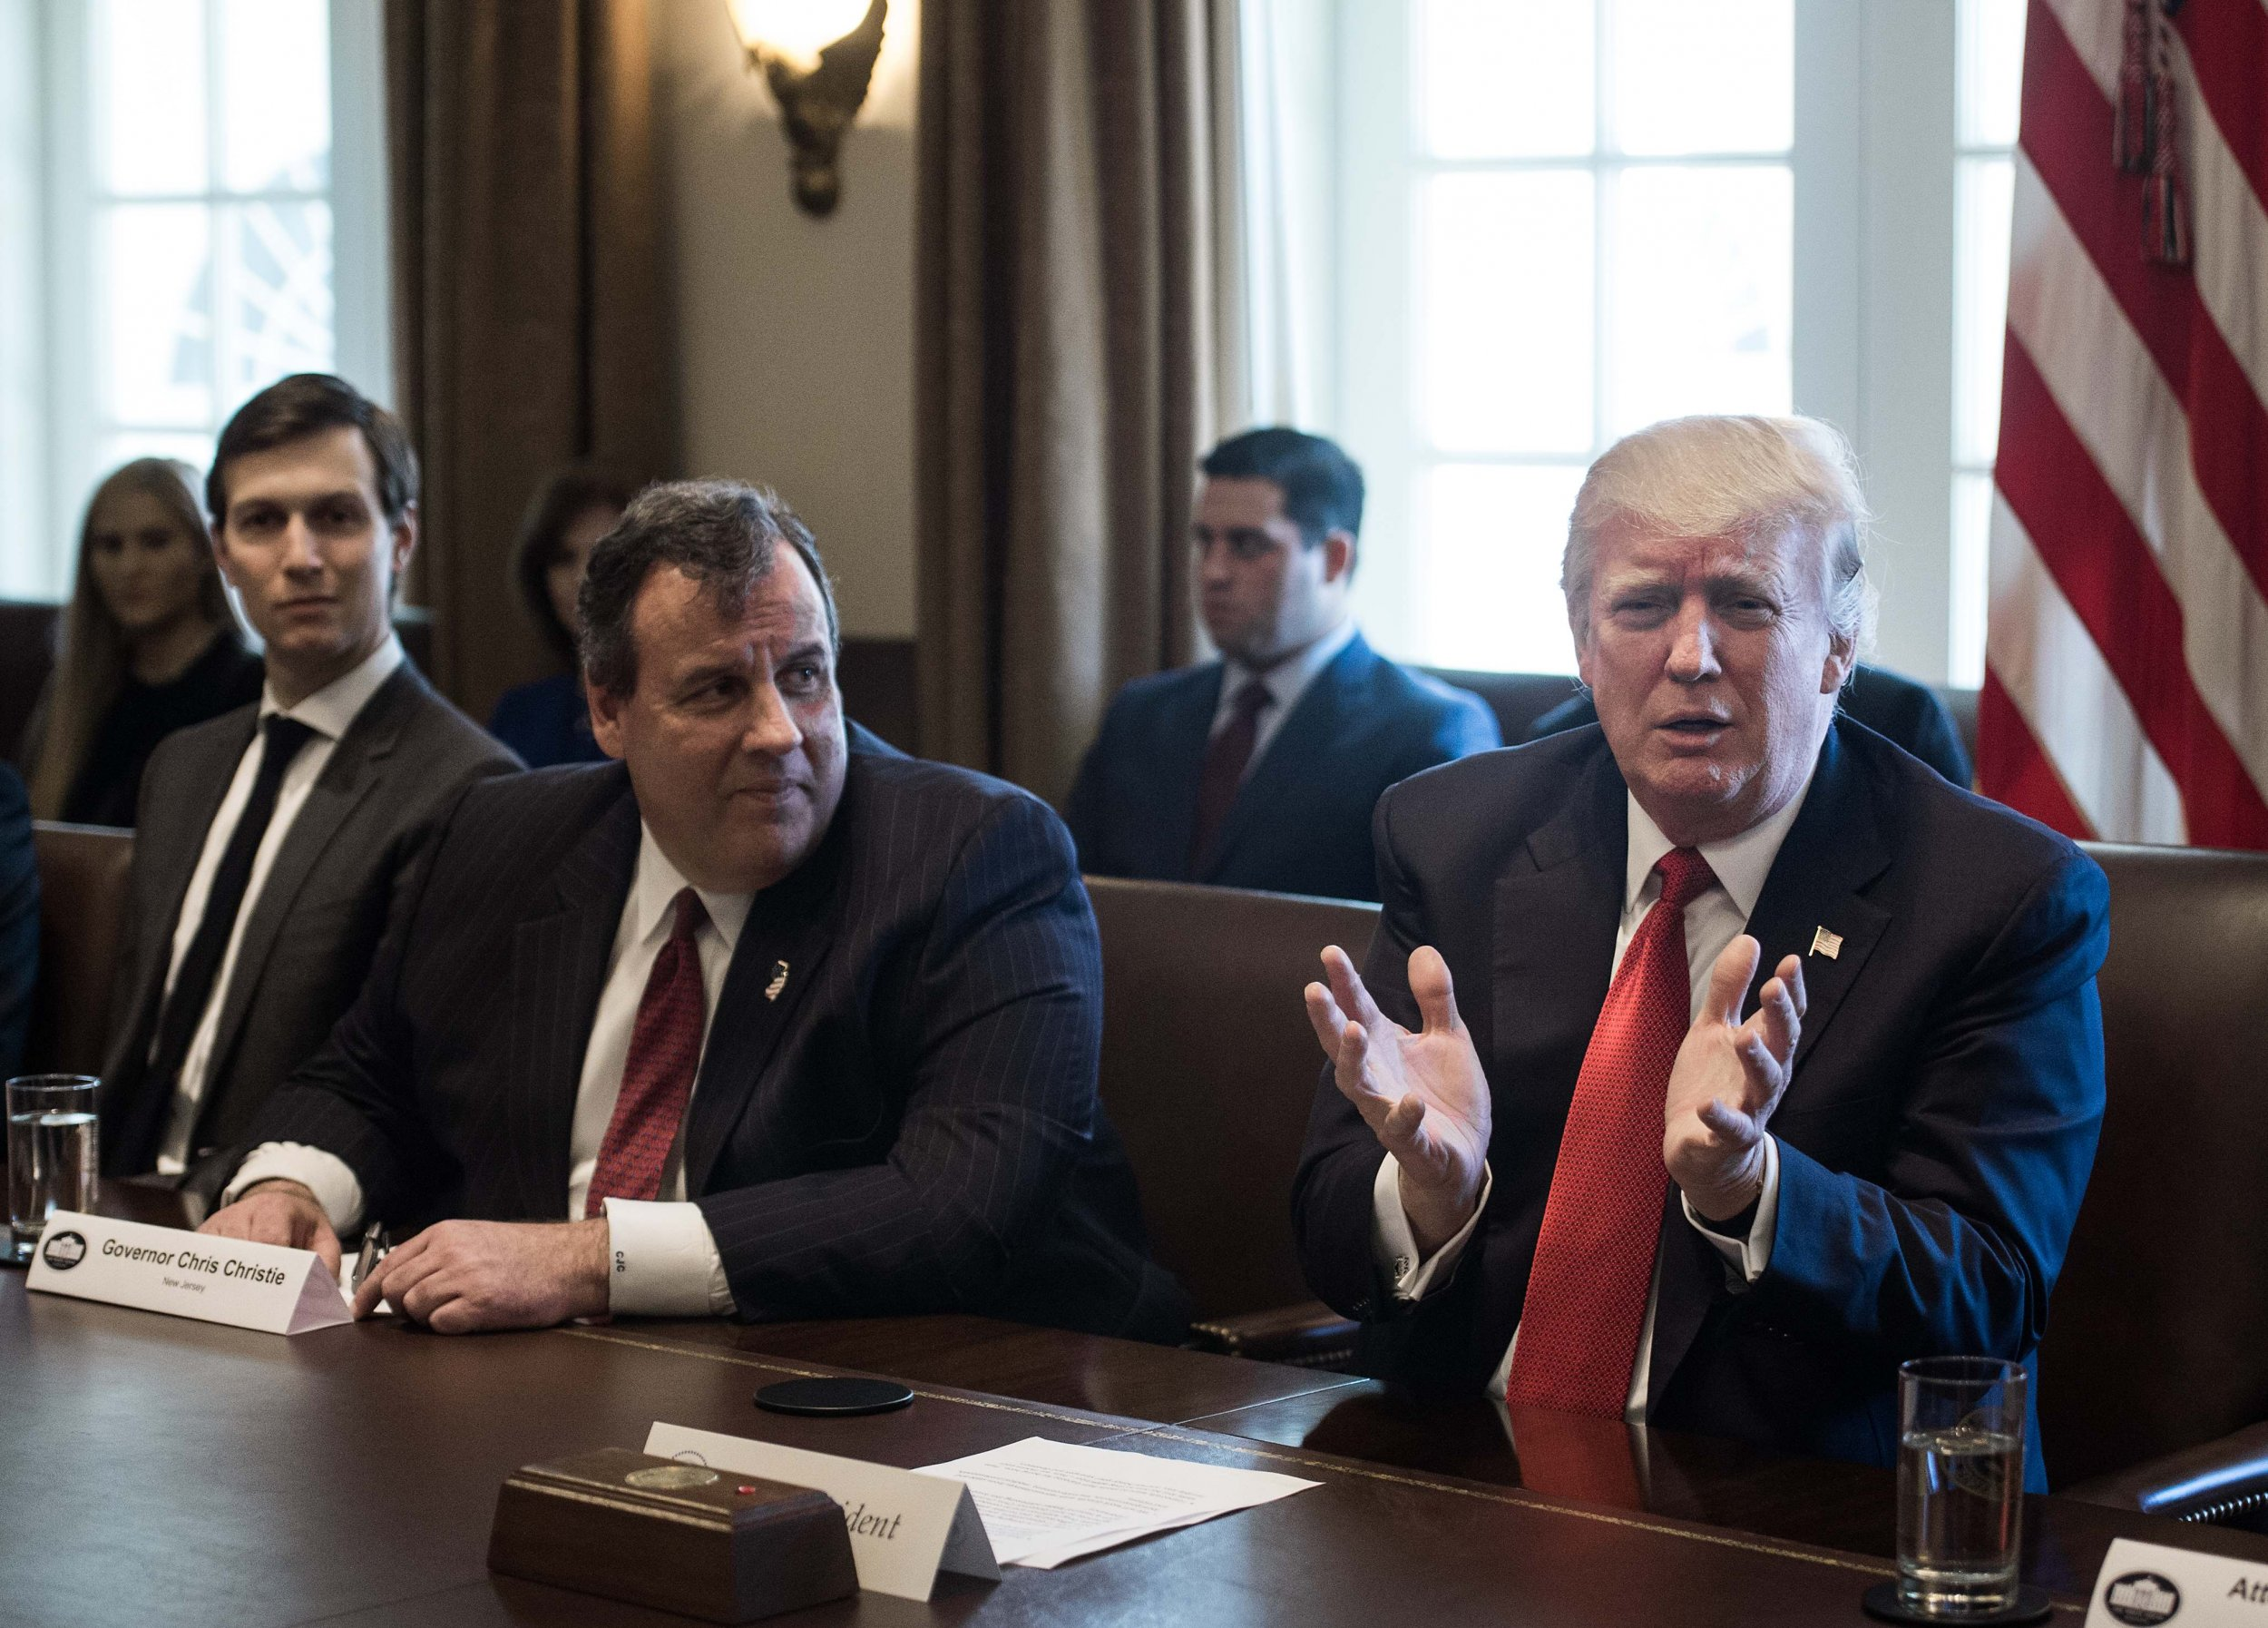 Jared Kushner told Donald Trump that firing Comey and Flynn would help end Russia probe, Chris Christie says